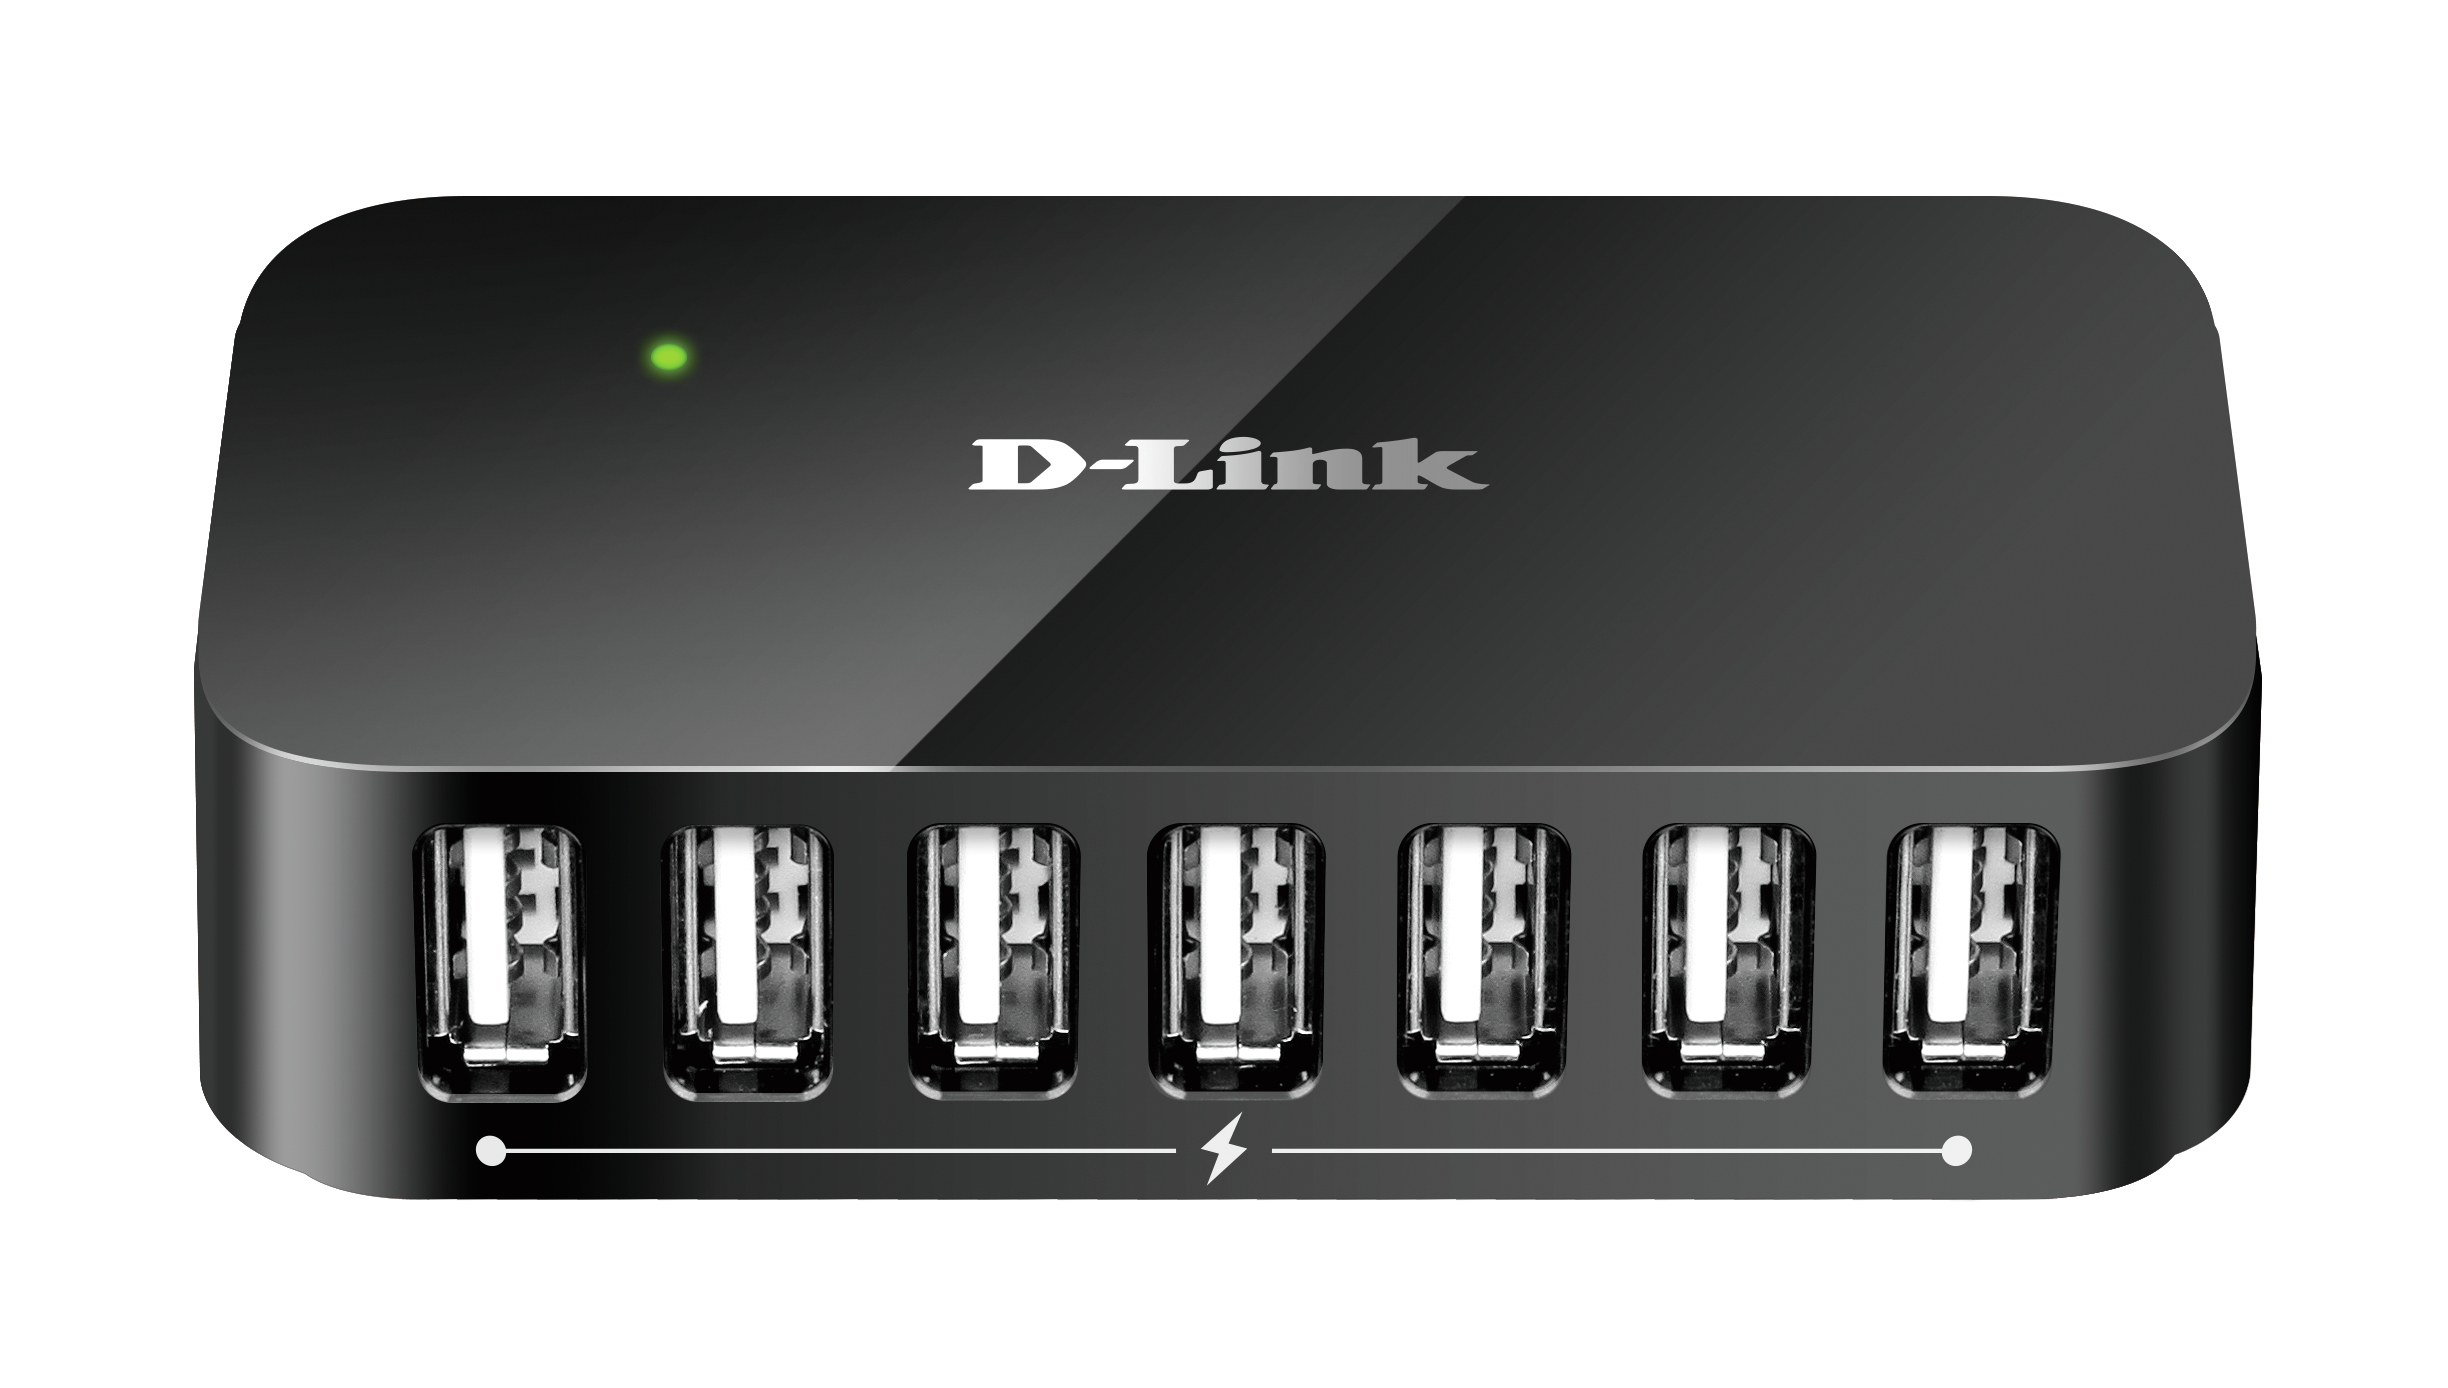 D-LINK DUB-H7 USB 2.0 TYPE-B 480MBIT/S BLACK INTERFACE HUB